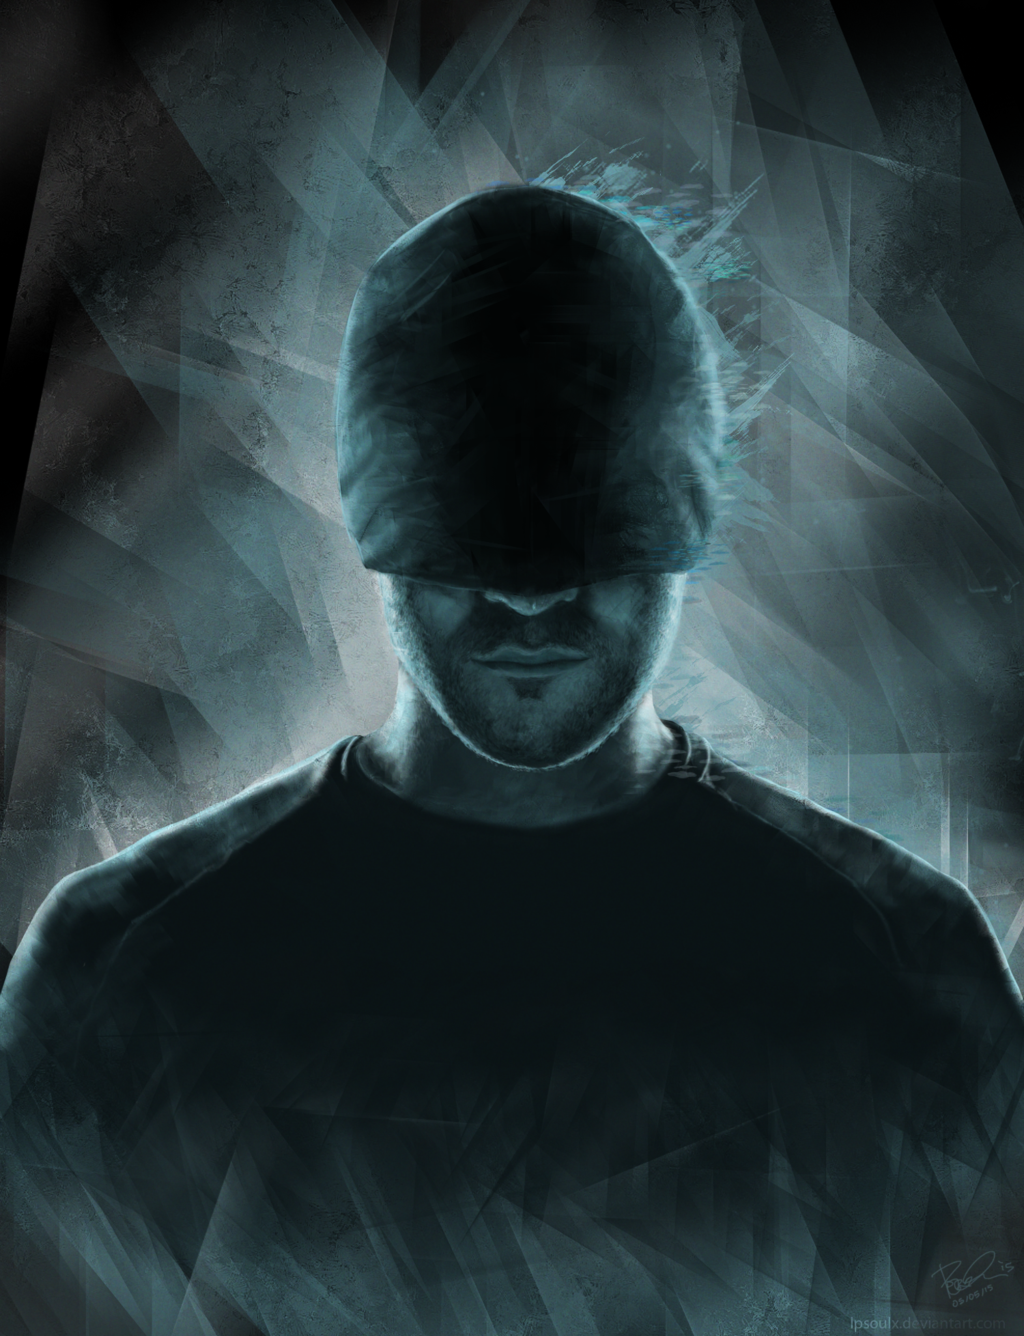 The Man In The Mask Marvel S Daredevil By Lpsoulx